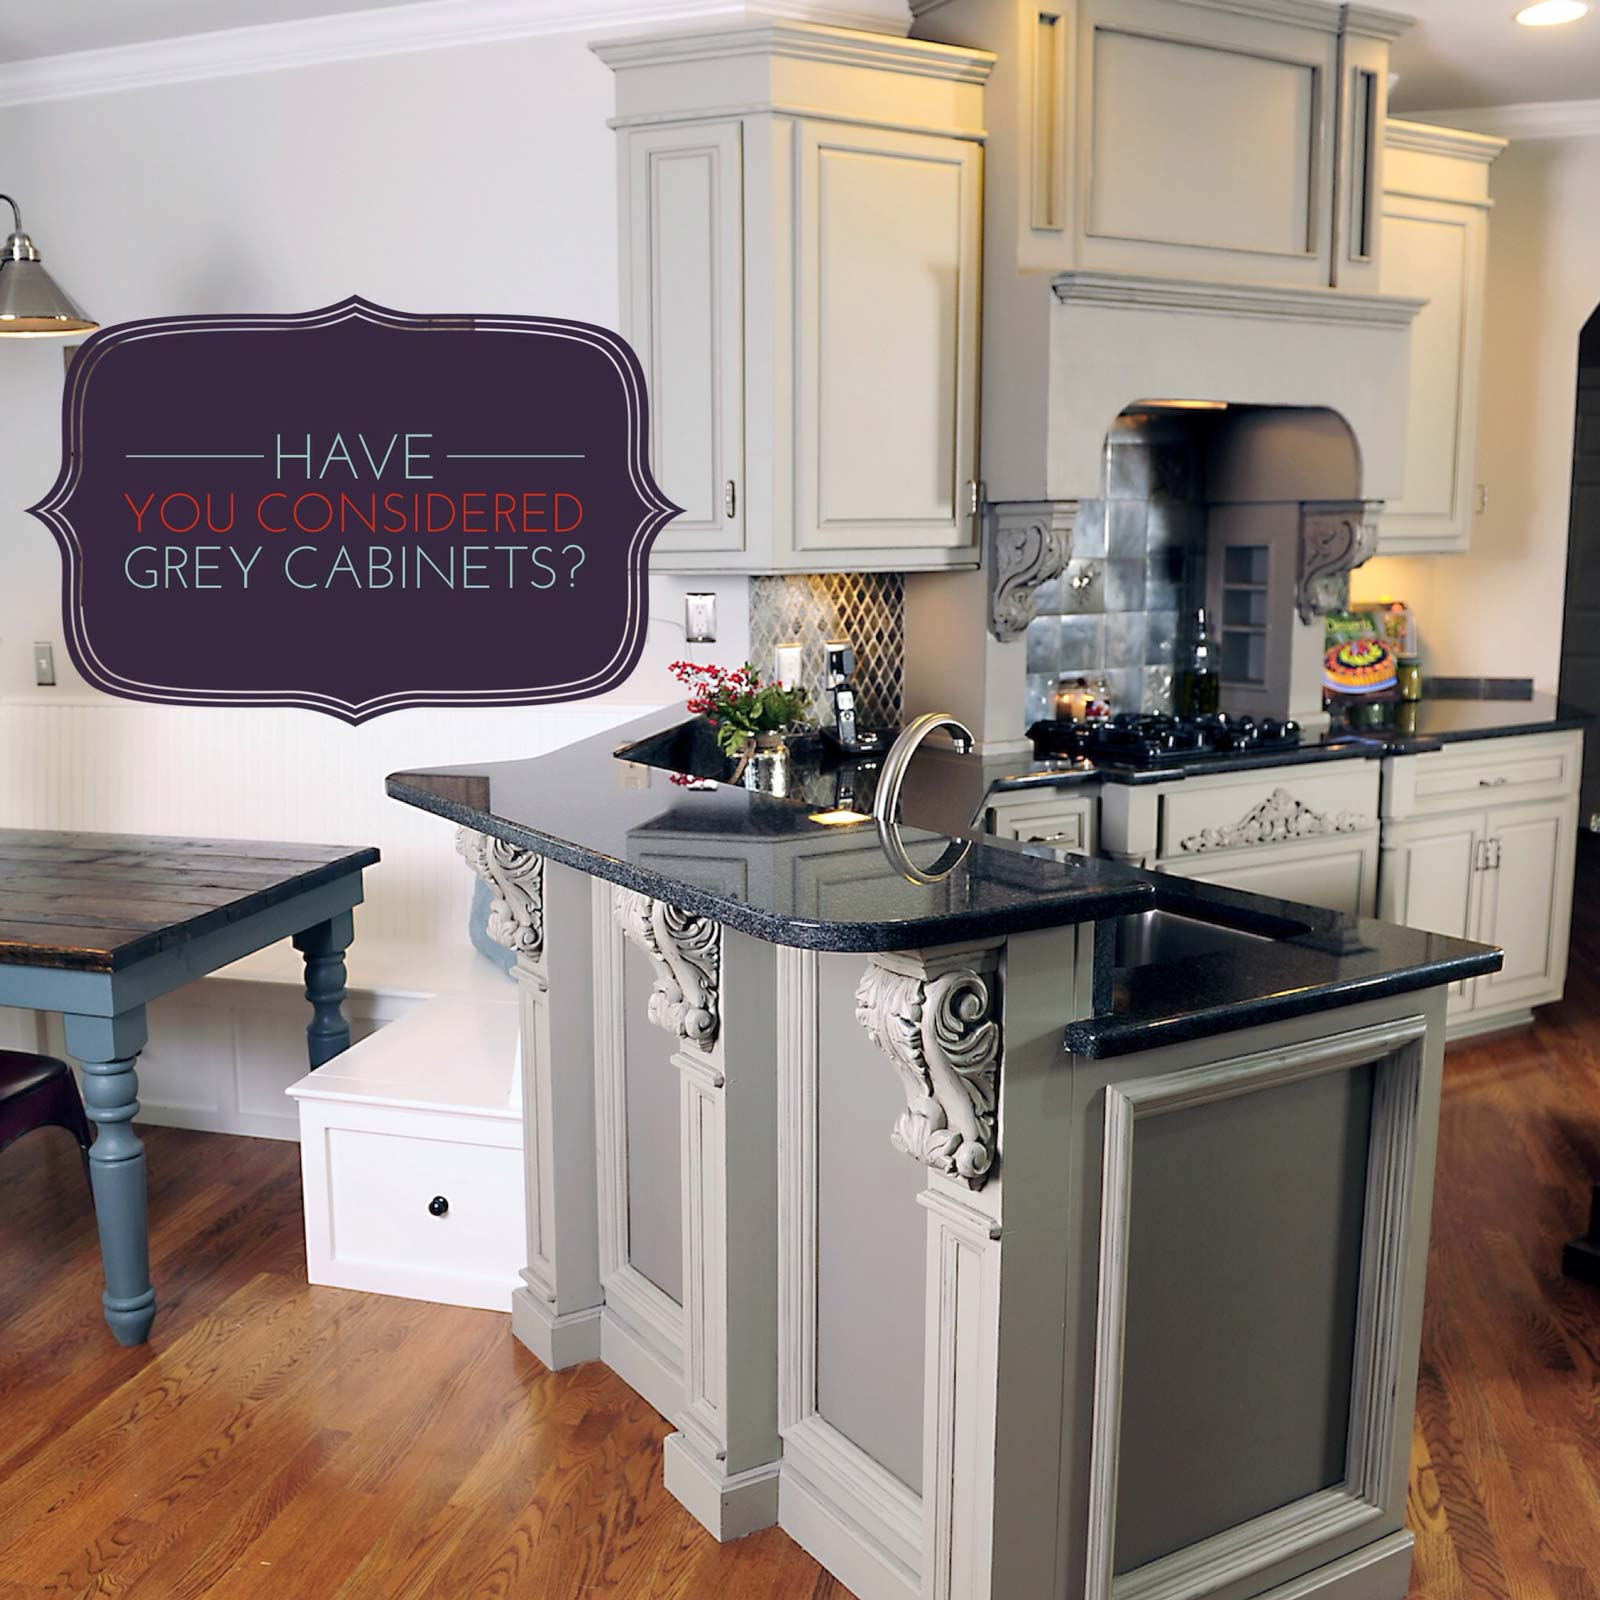 Have You Considered Grey Kitchen Cabinets - Light grey painted kitchen cabinets